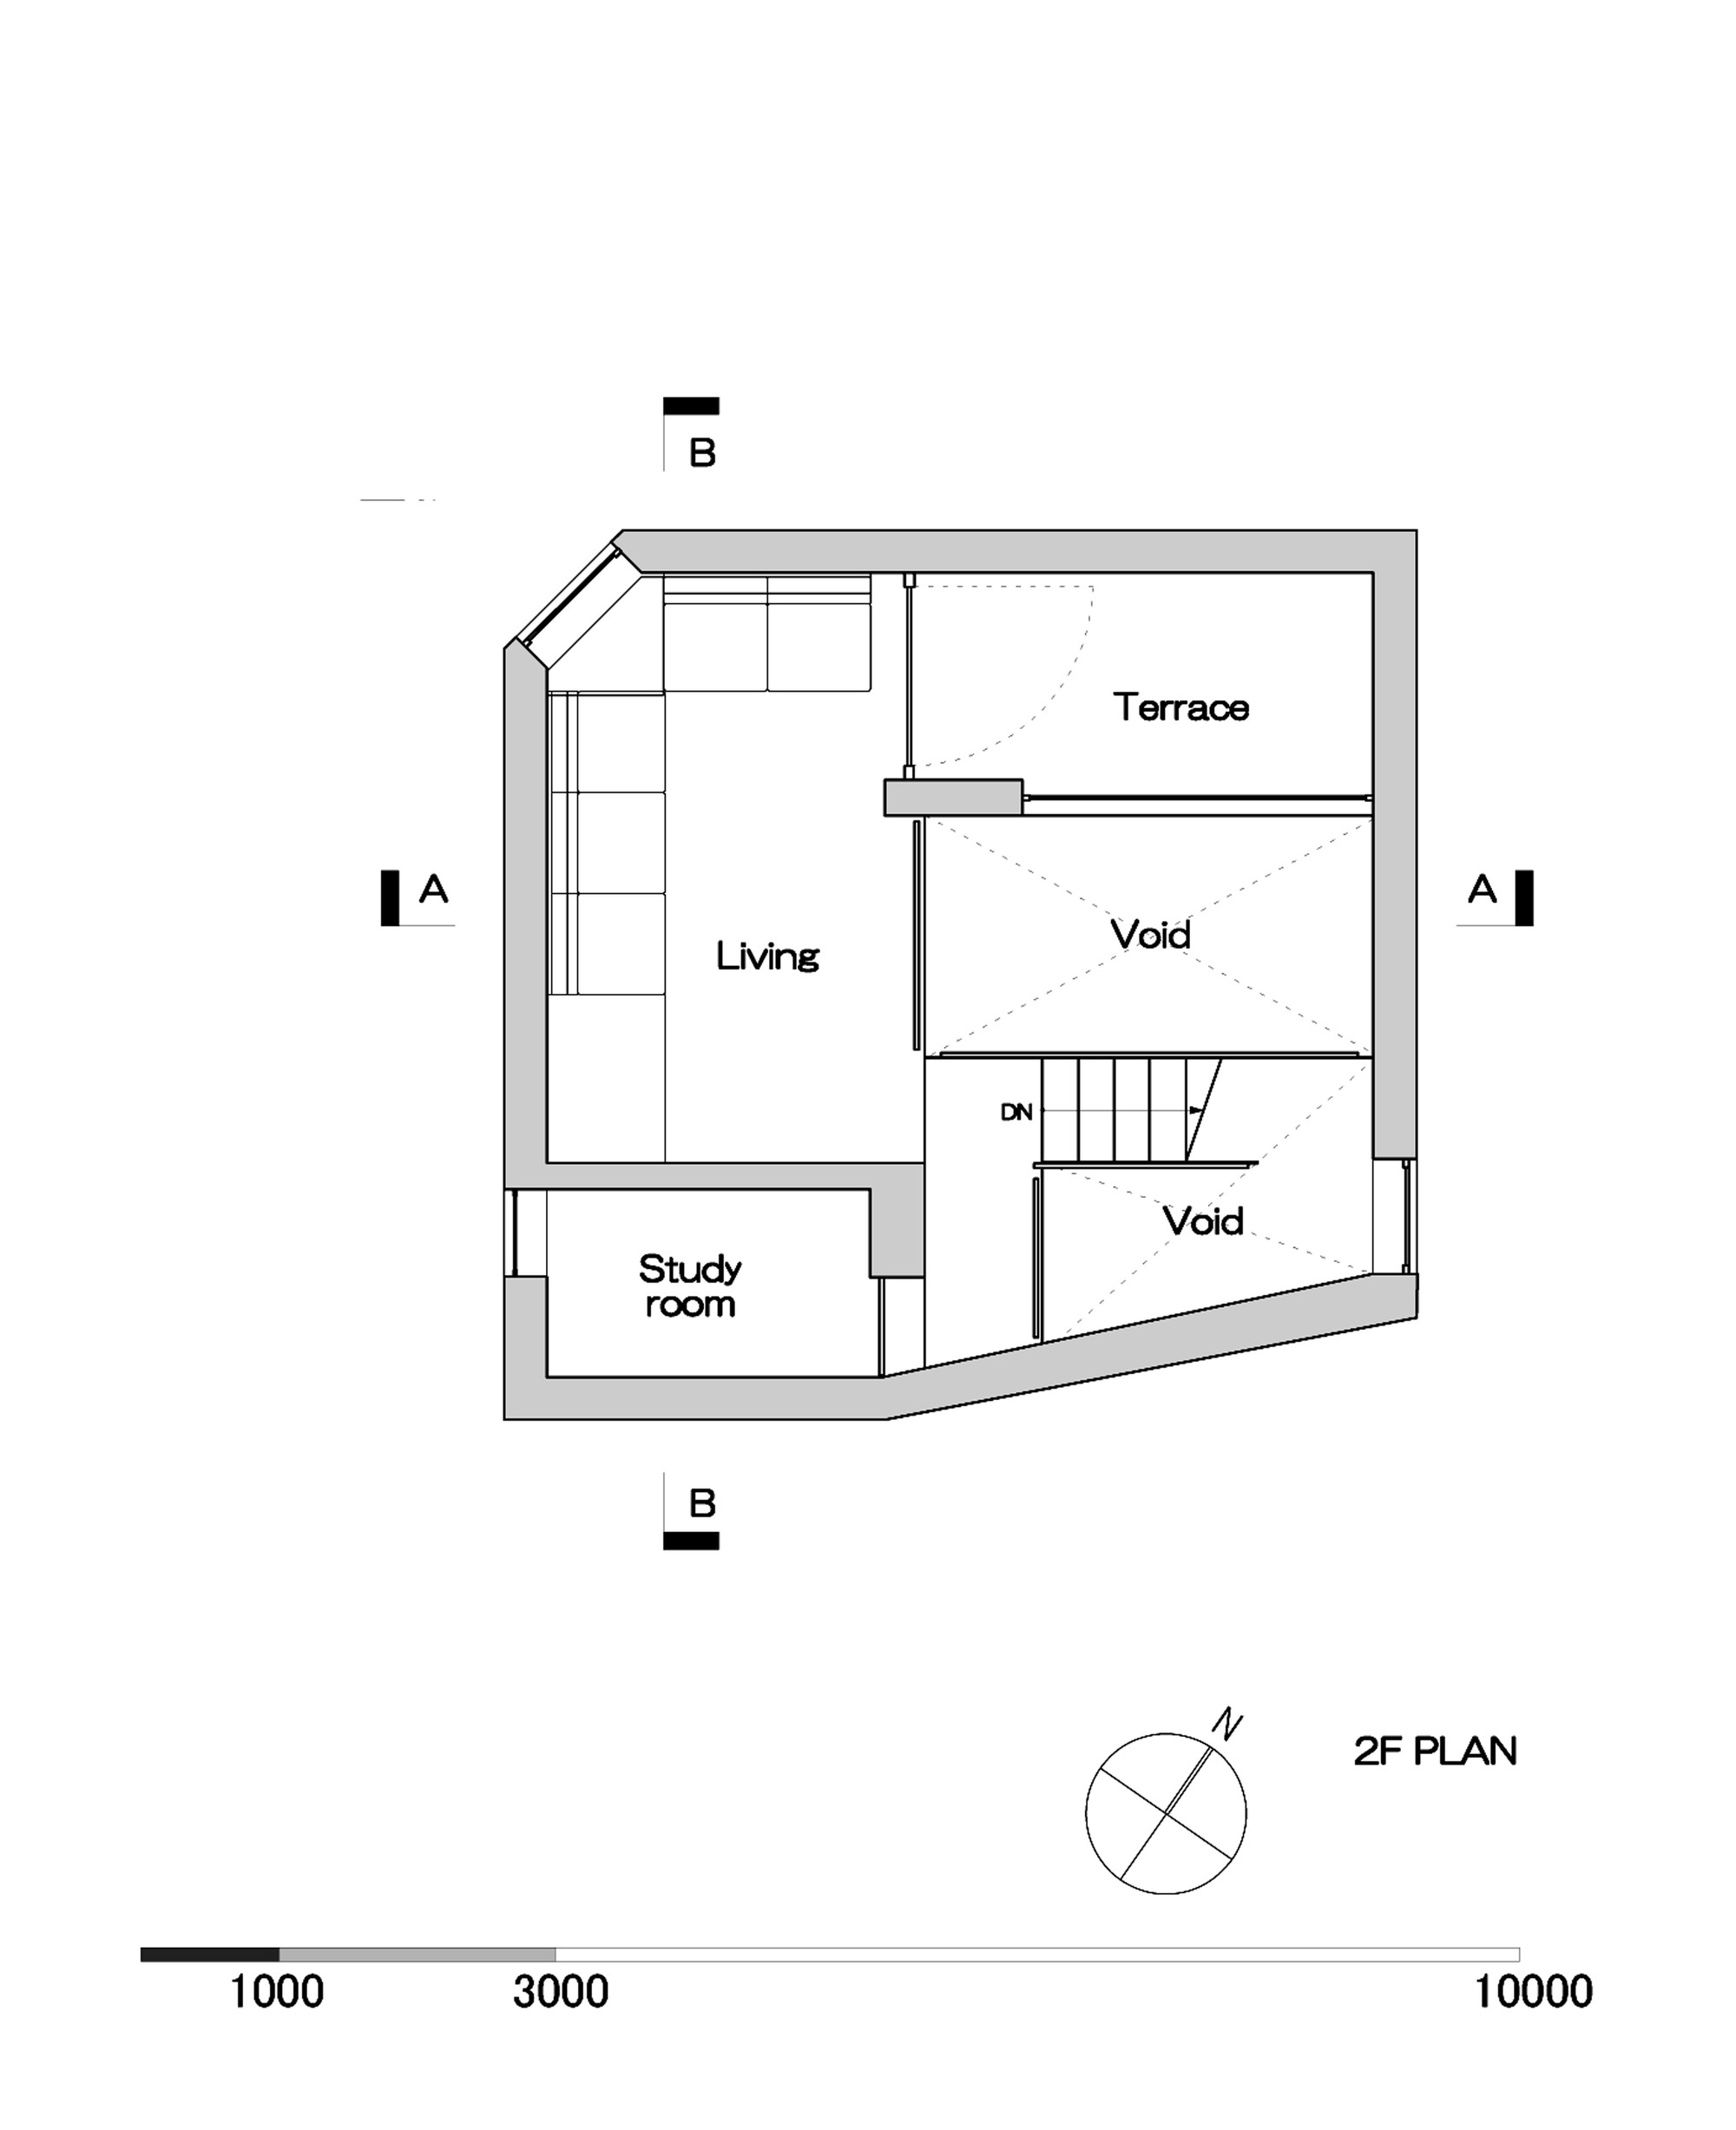 Log3 also 531fbf81c07a80688c00041d Shirokane House Mds Second Floor Plan likewise Brosse Peigne Blanc Collection Royal White together with Flowers Parts Diagram further 2. on 00041